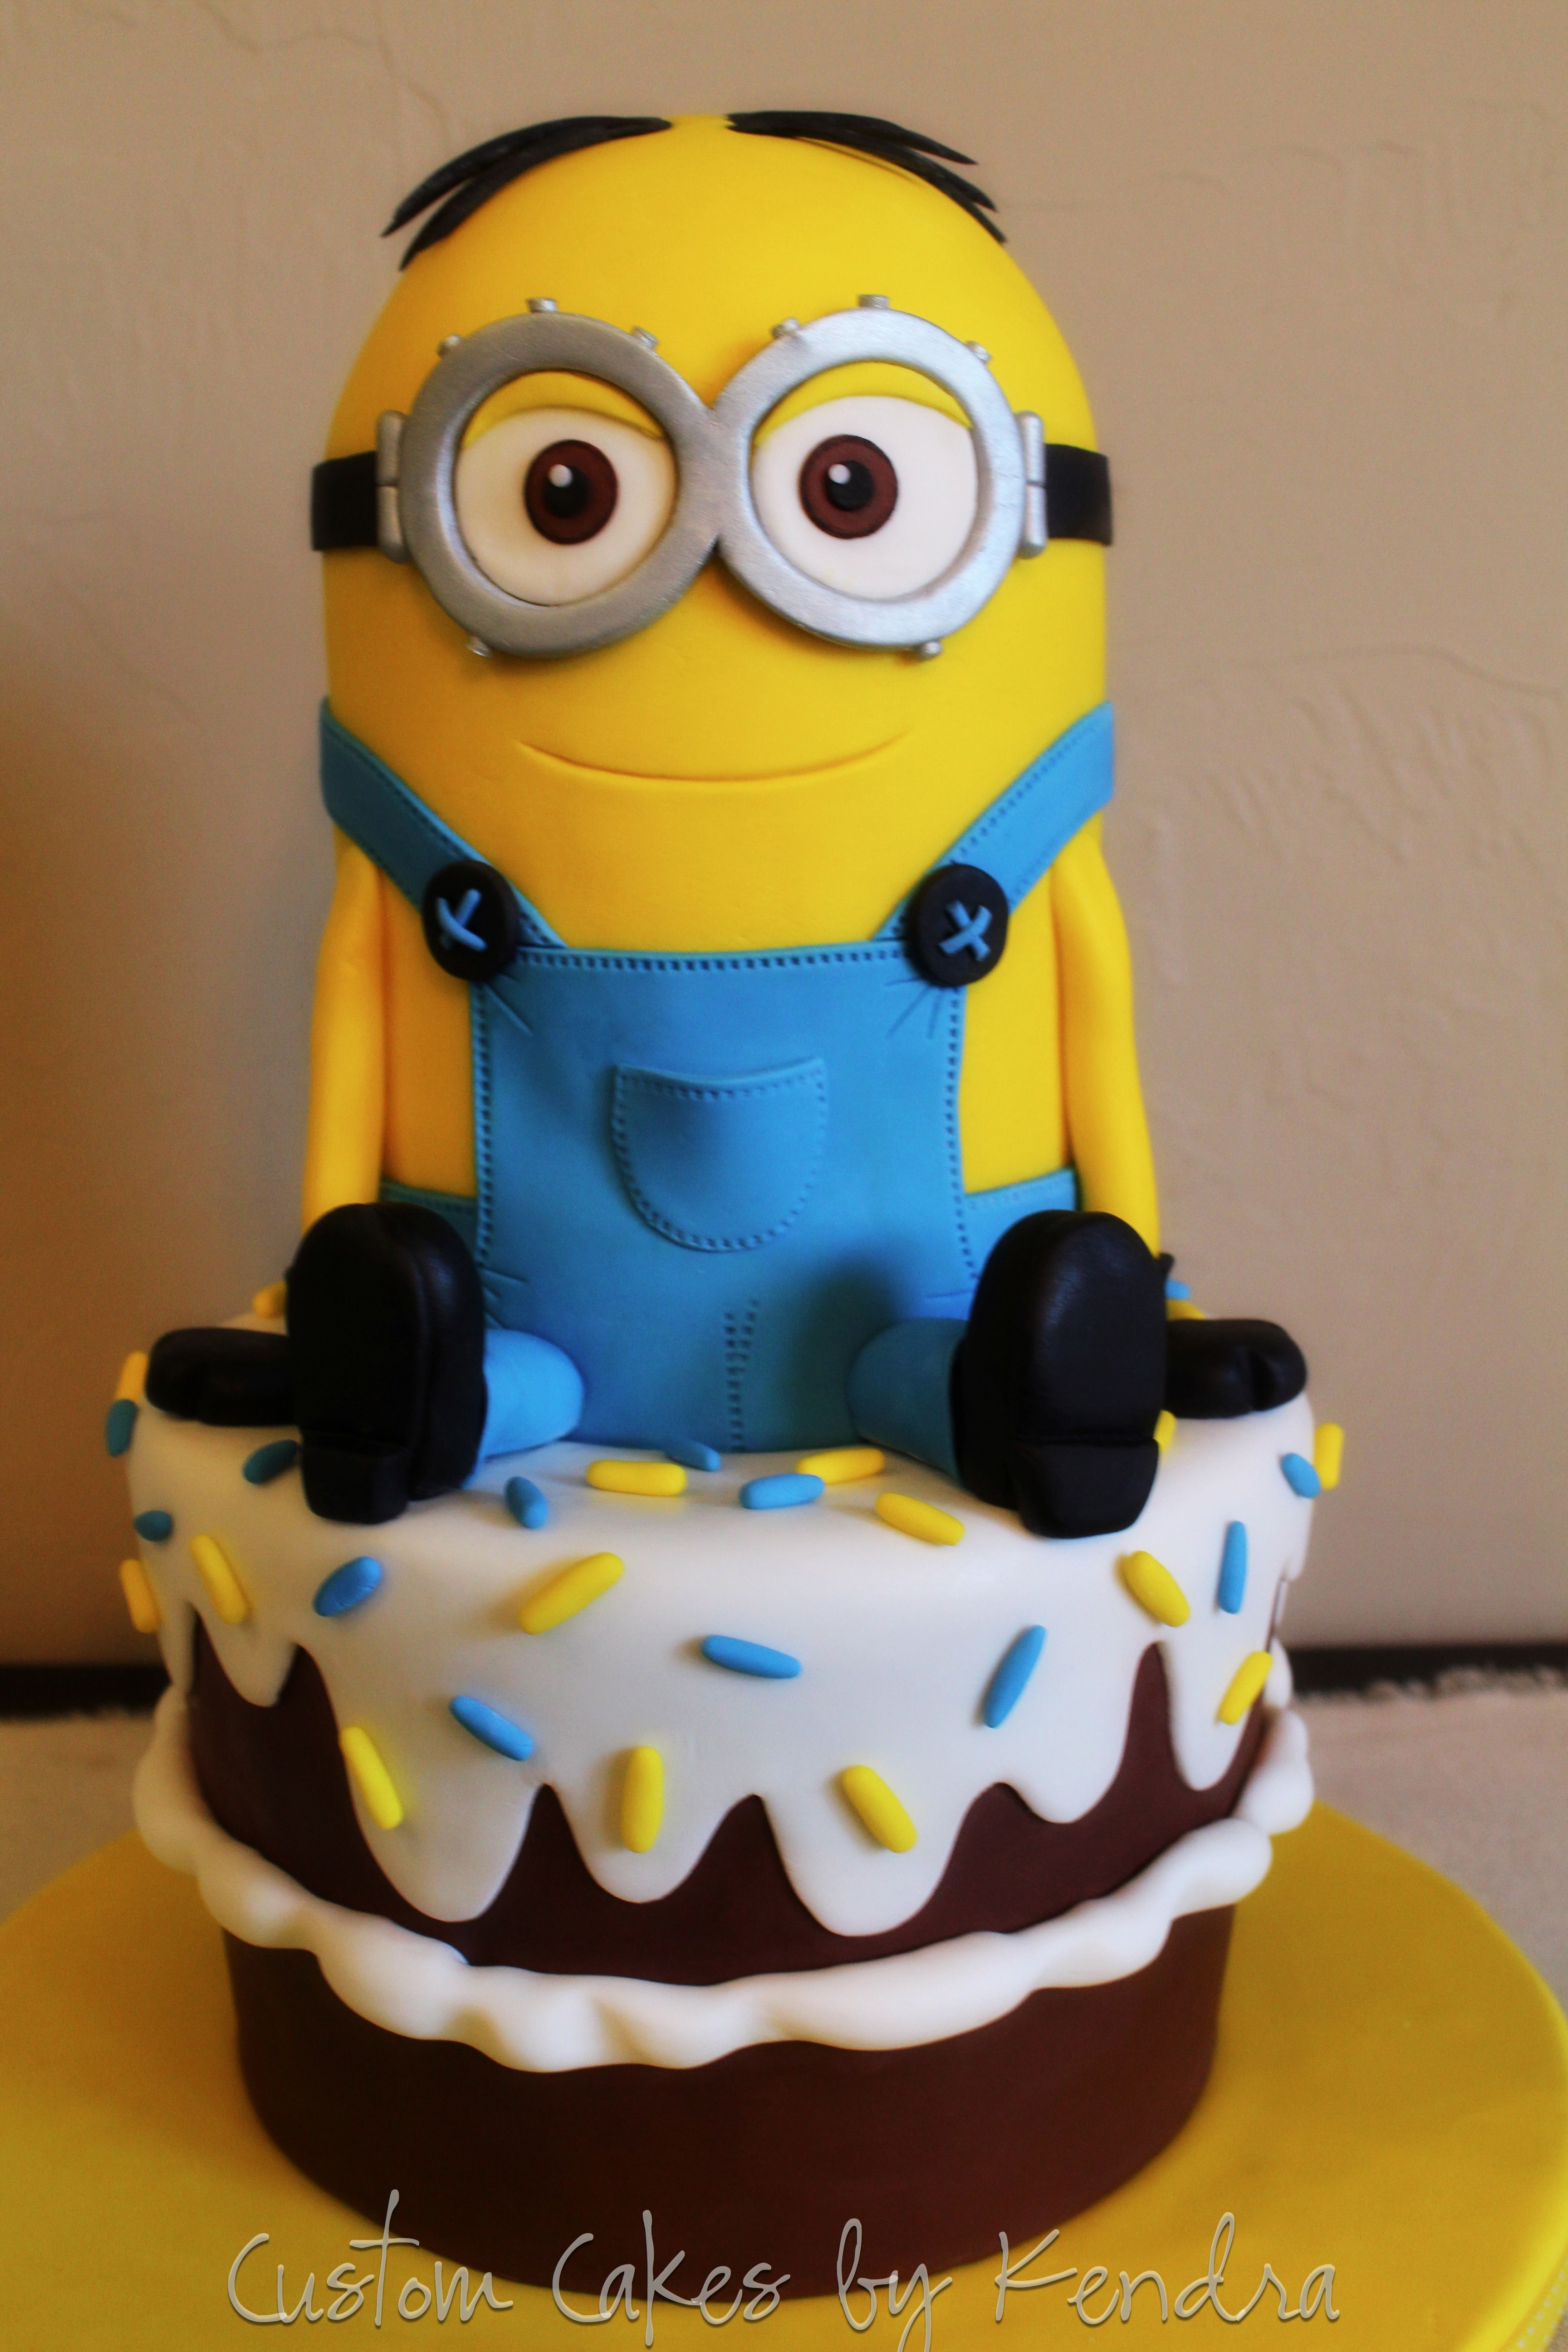 Awe Inspiring My First Minion With Images Minion Cake Minion Birthday Cake Personalised Birthday Cards Paralily Jamesorg